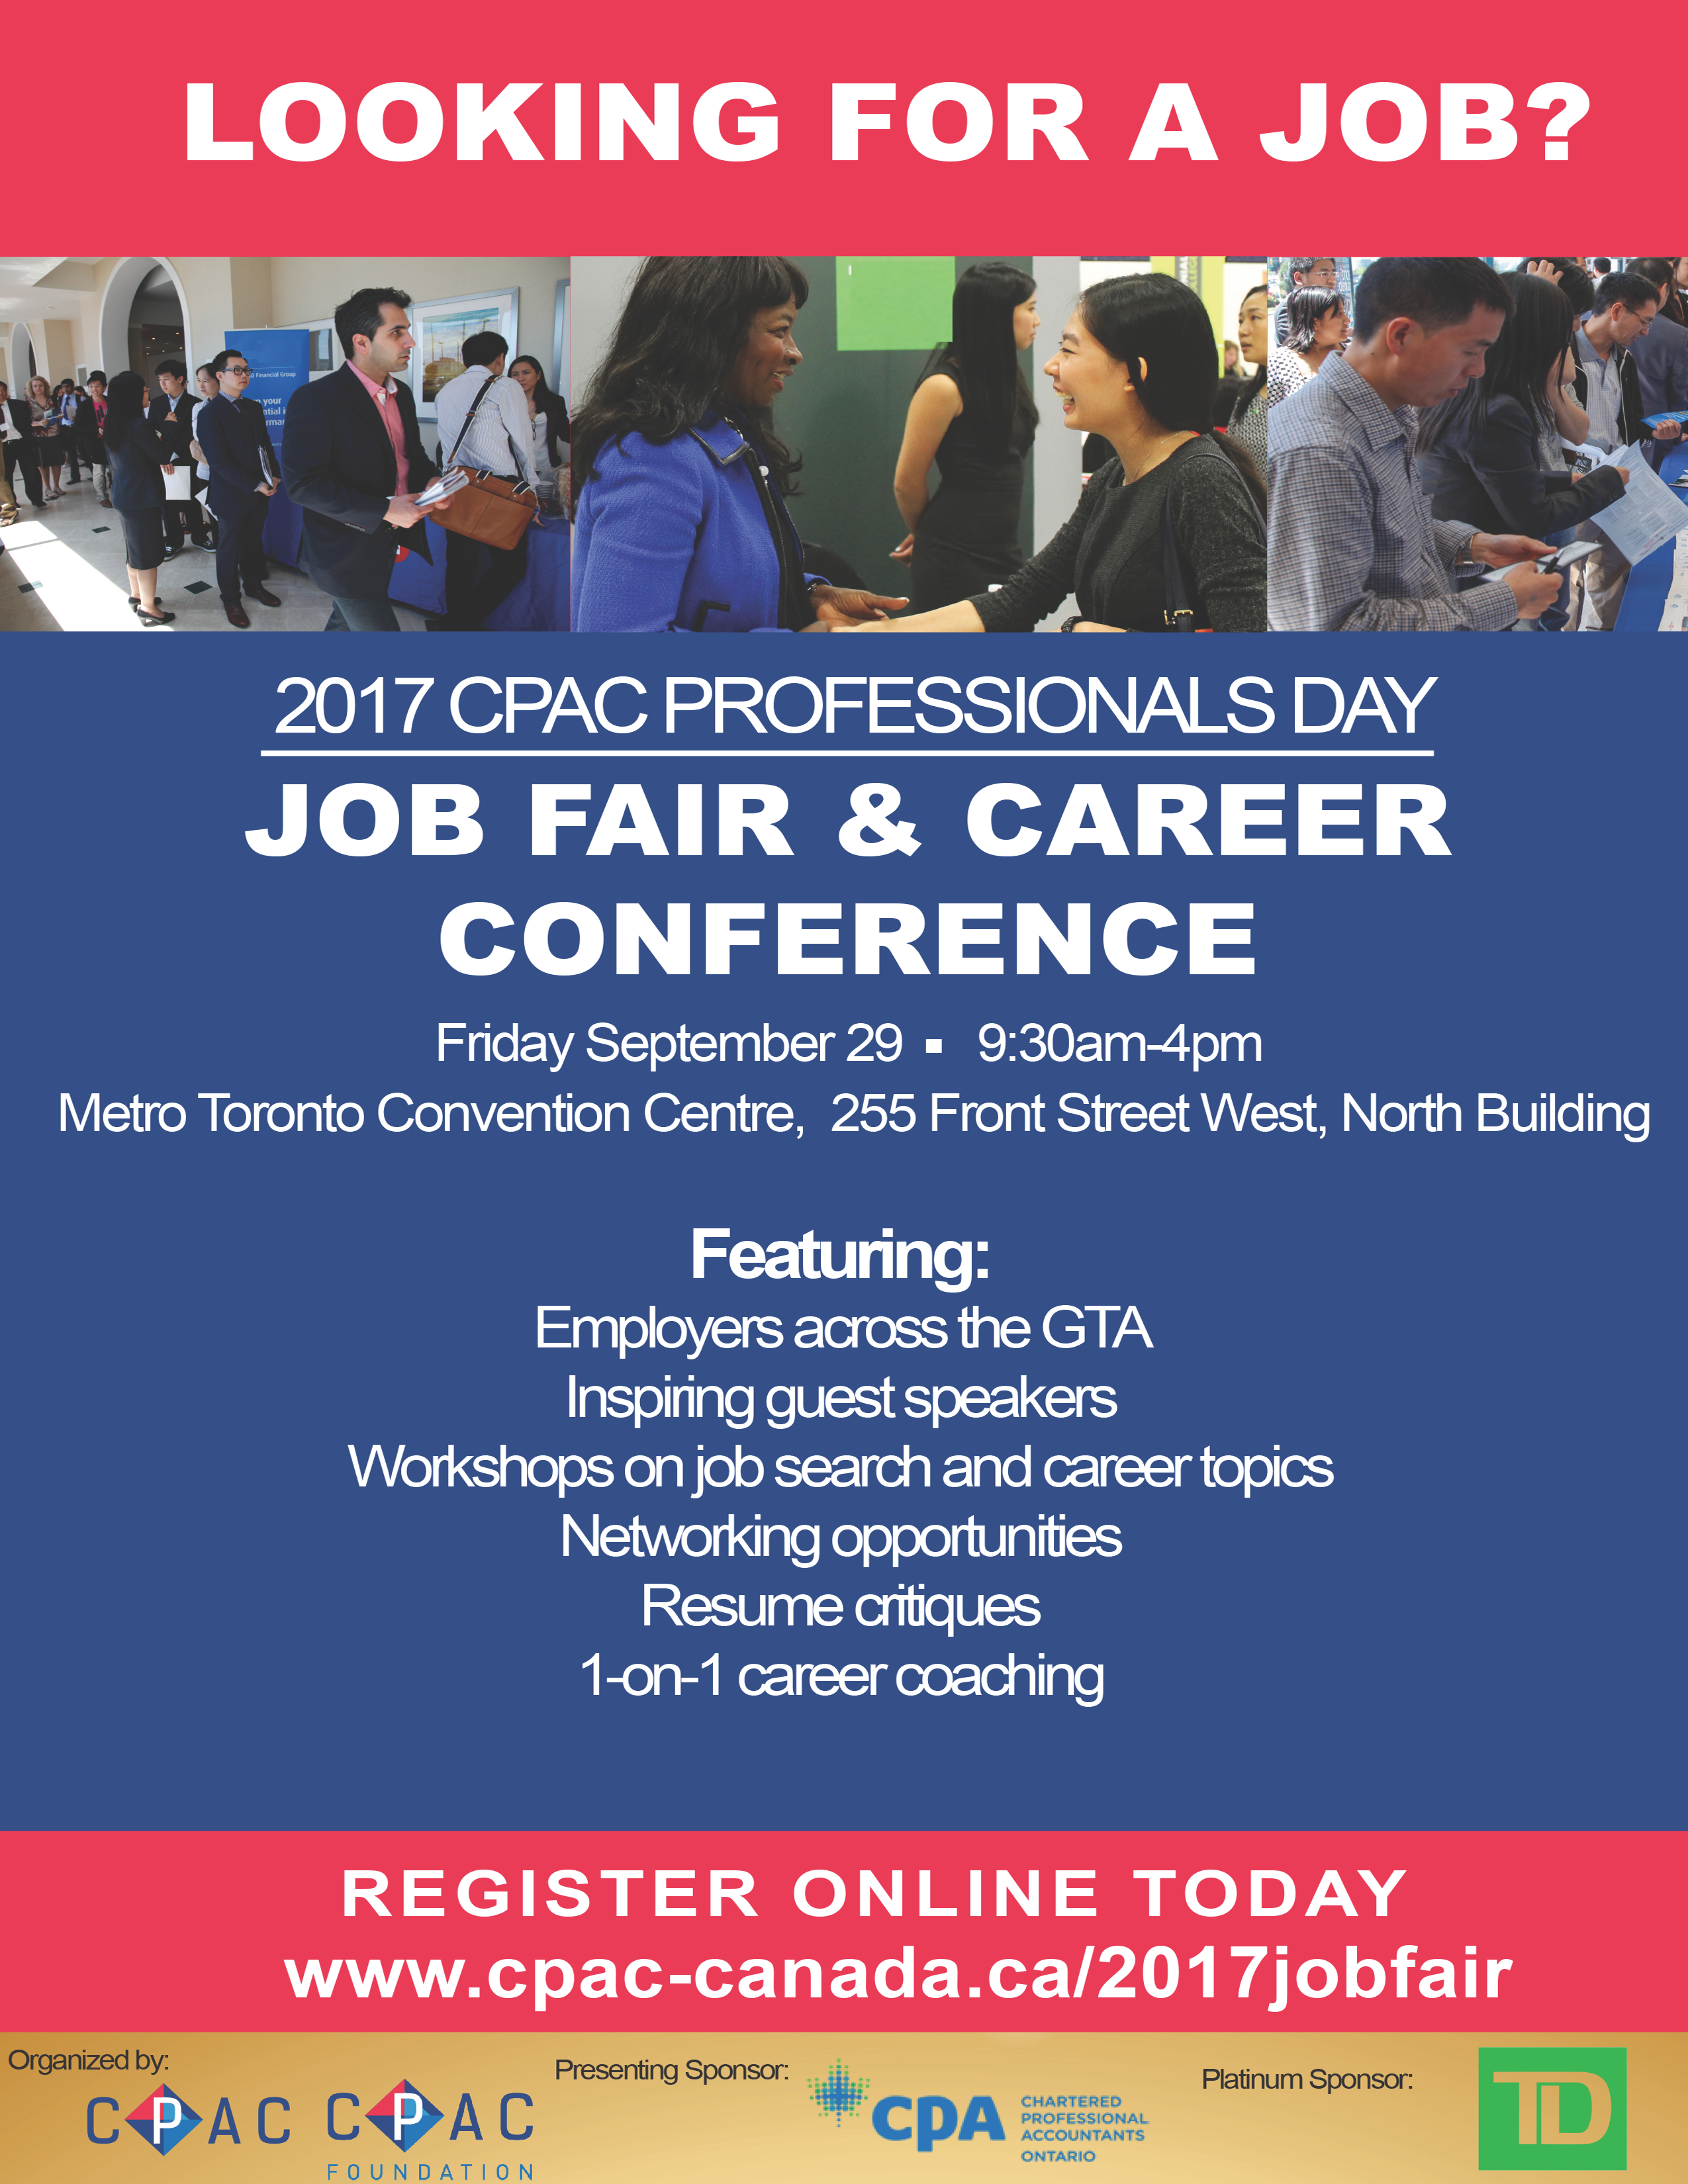 2017 CPAC Professionals Day: Career Conference & Job Fair